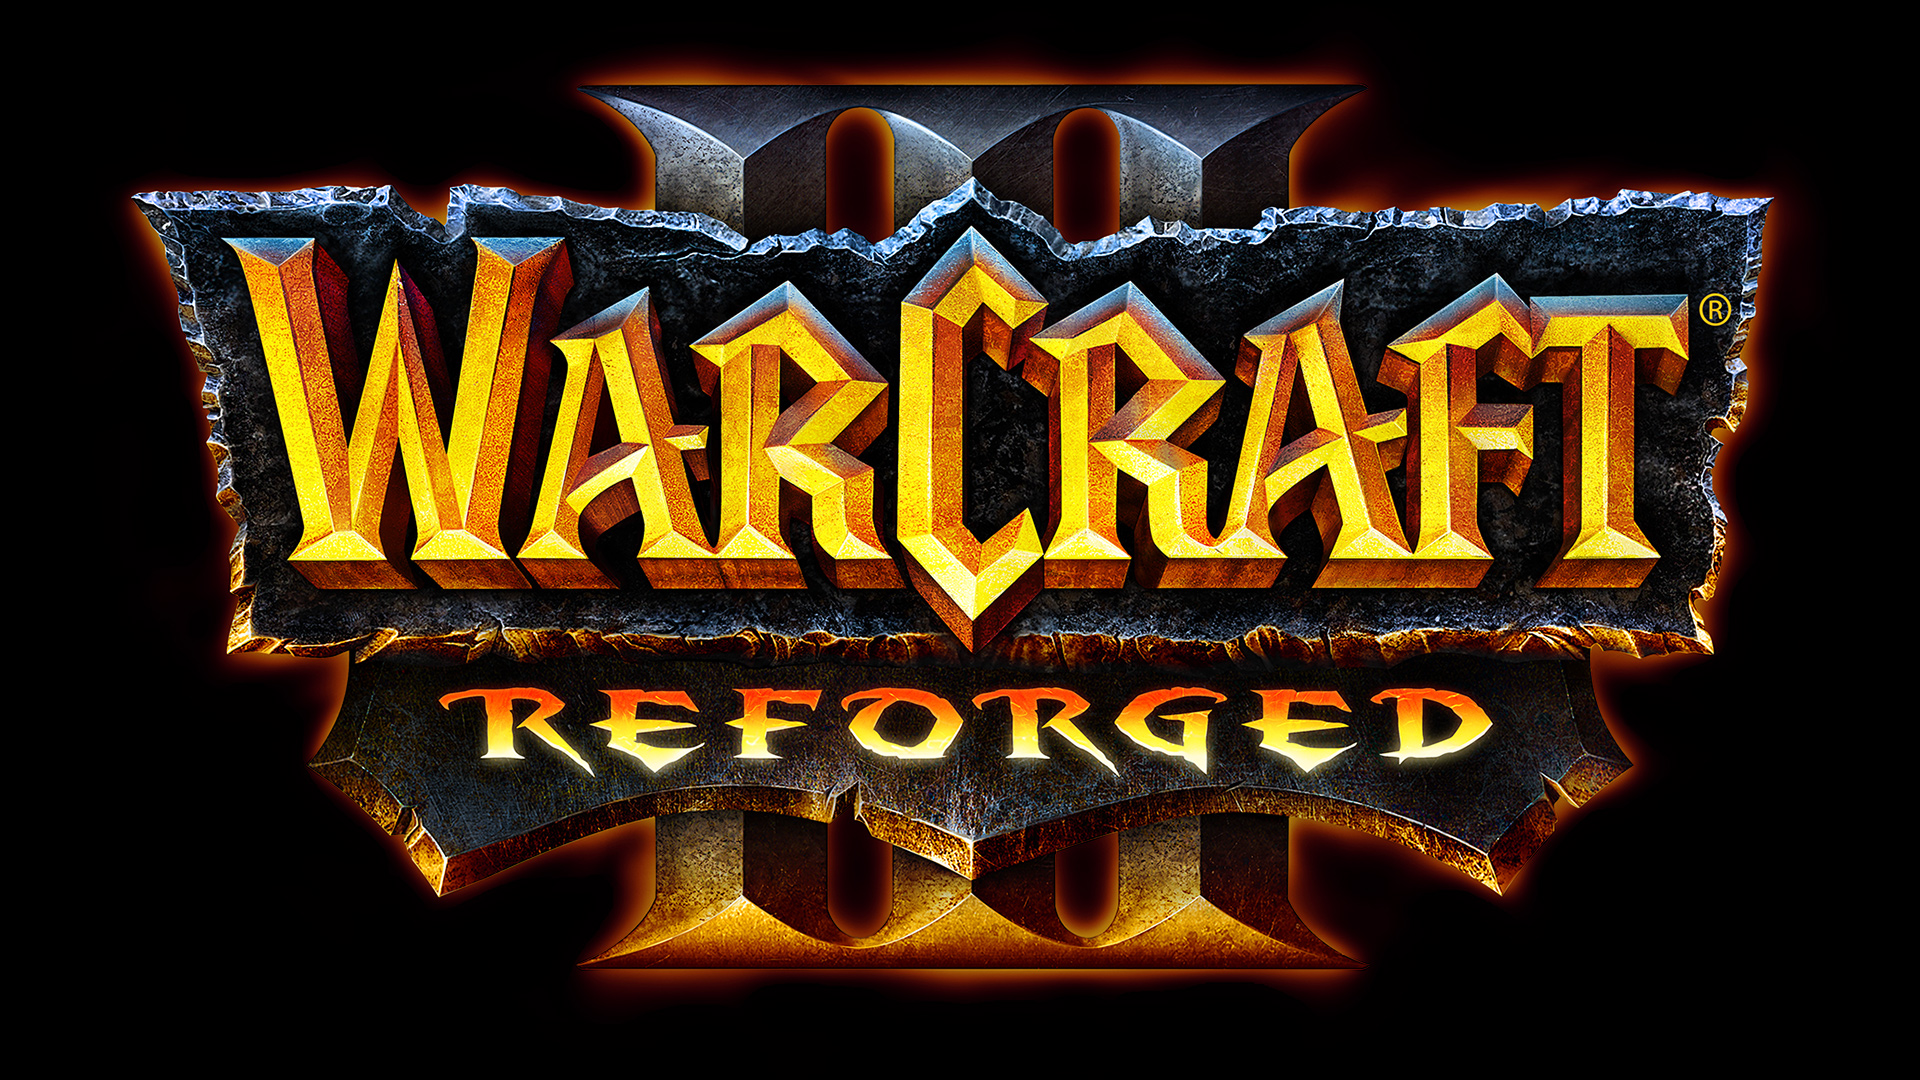 Warcraft III: Reforged Logo